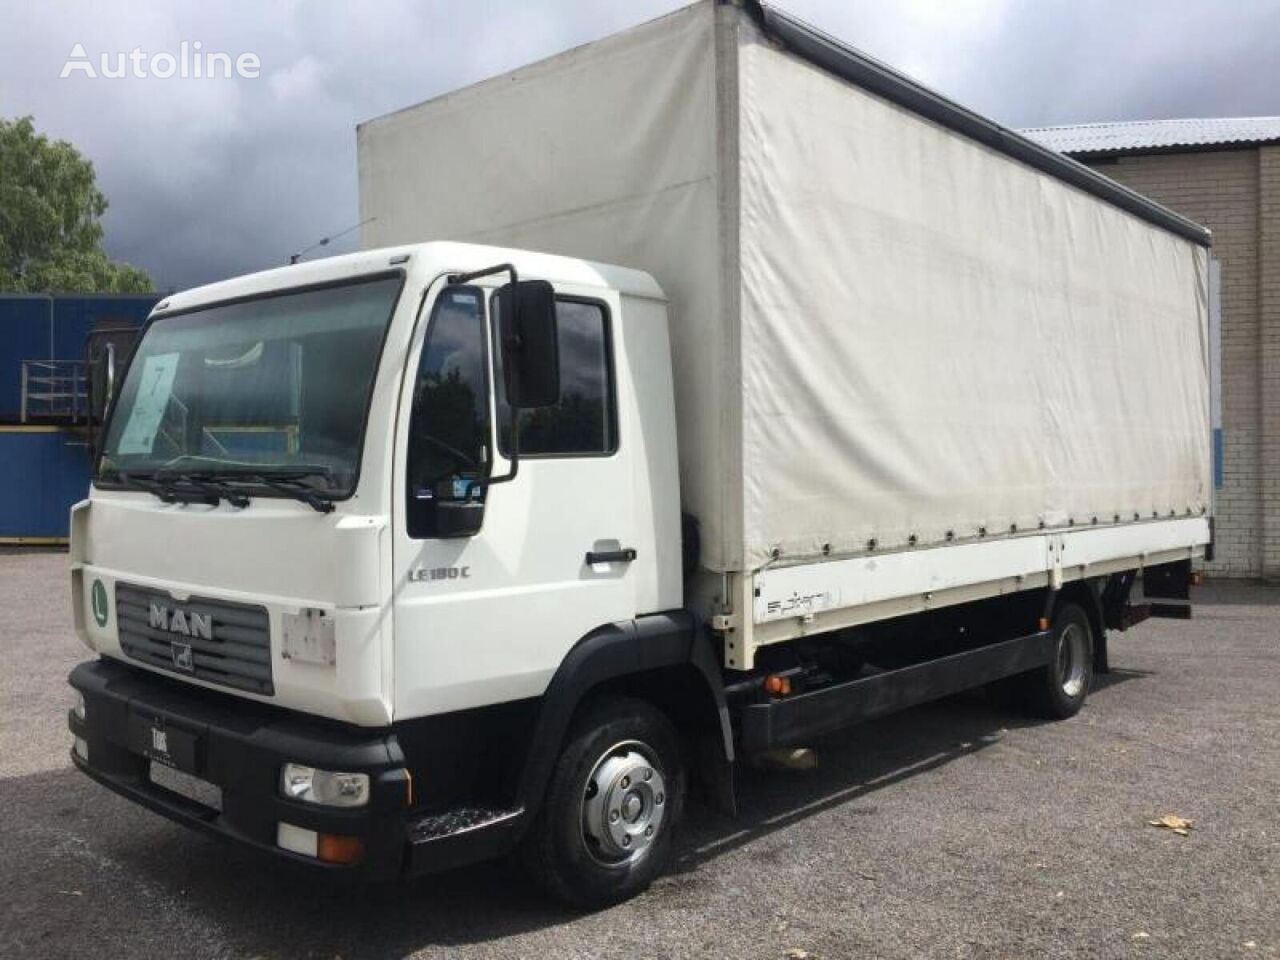 MAN 8.185 curtainsider truck